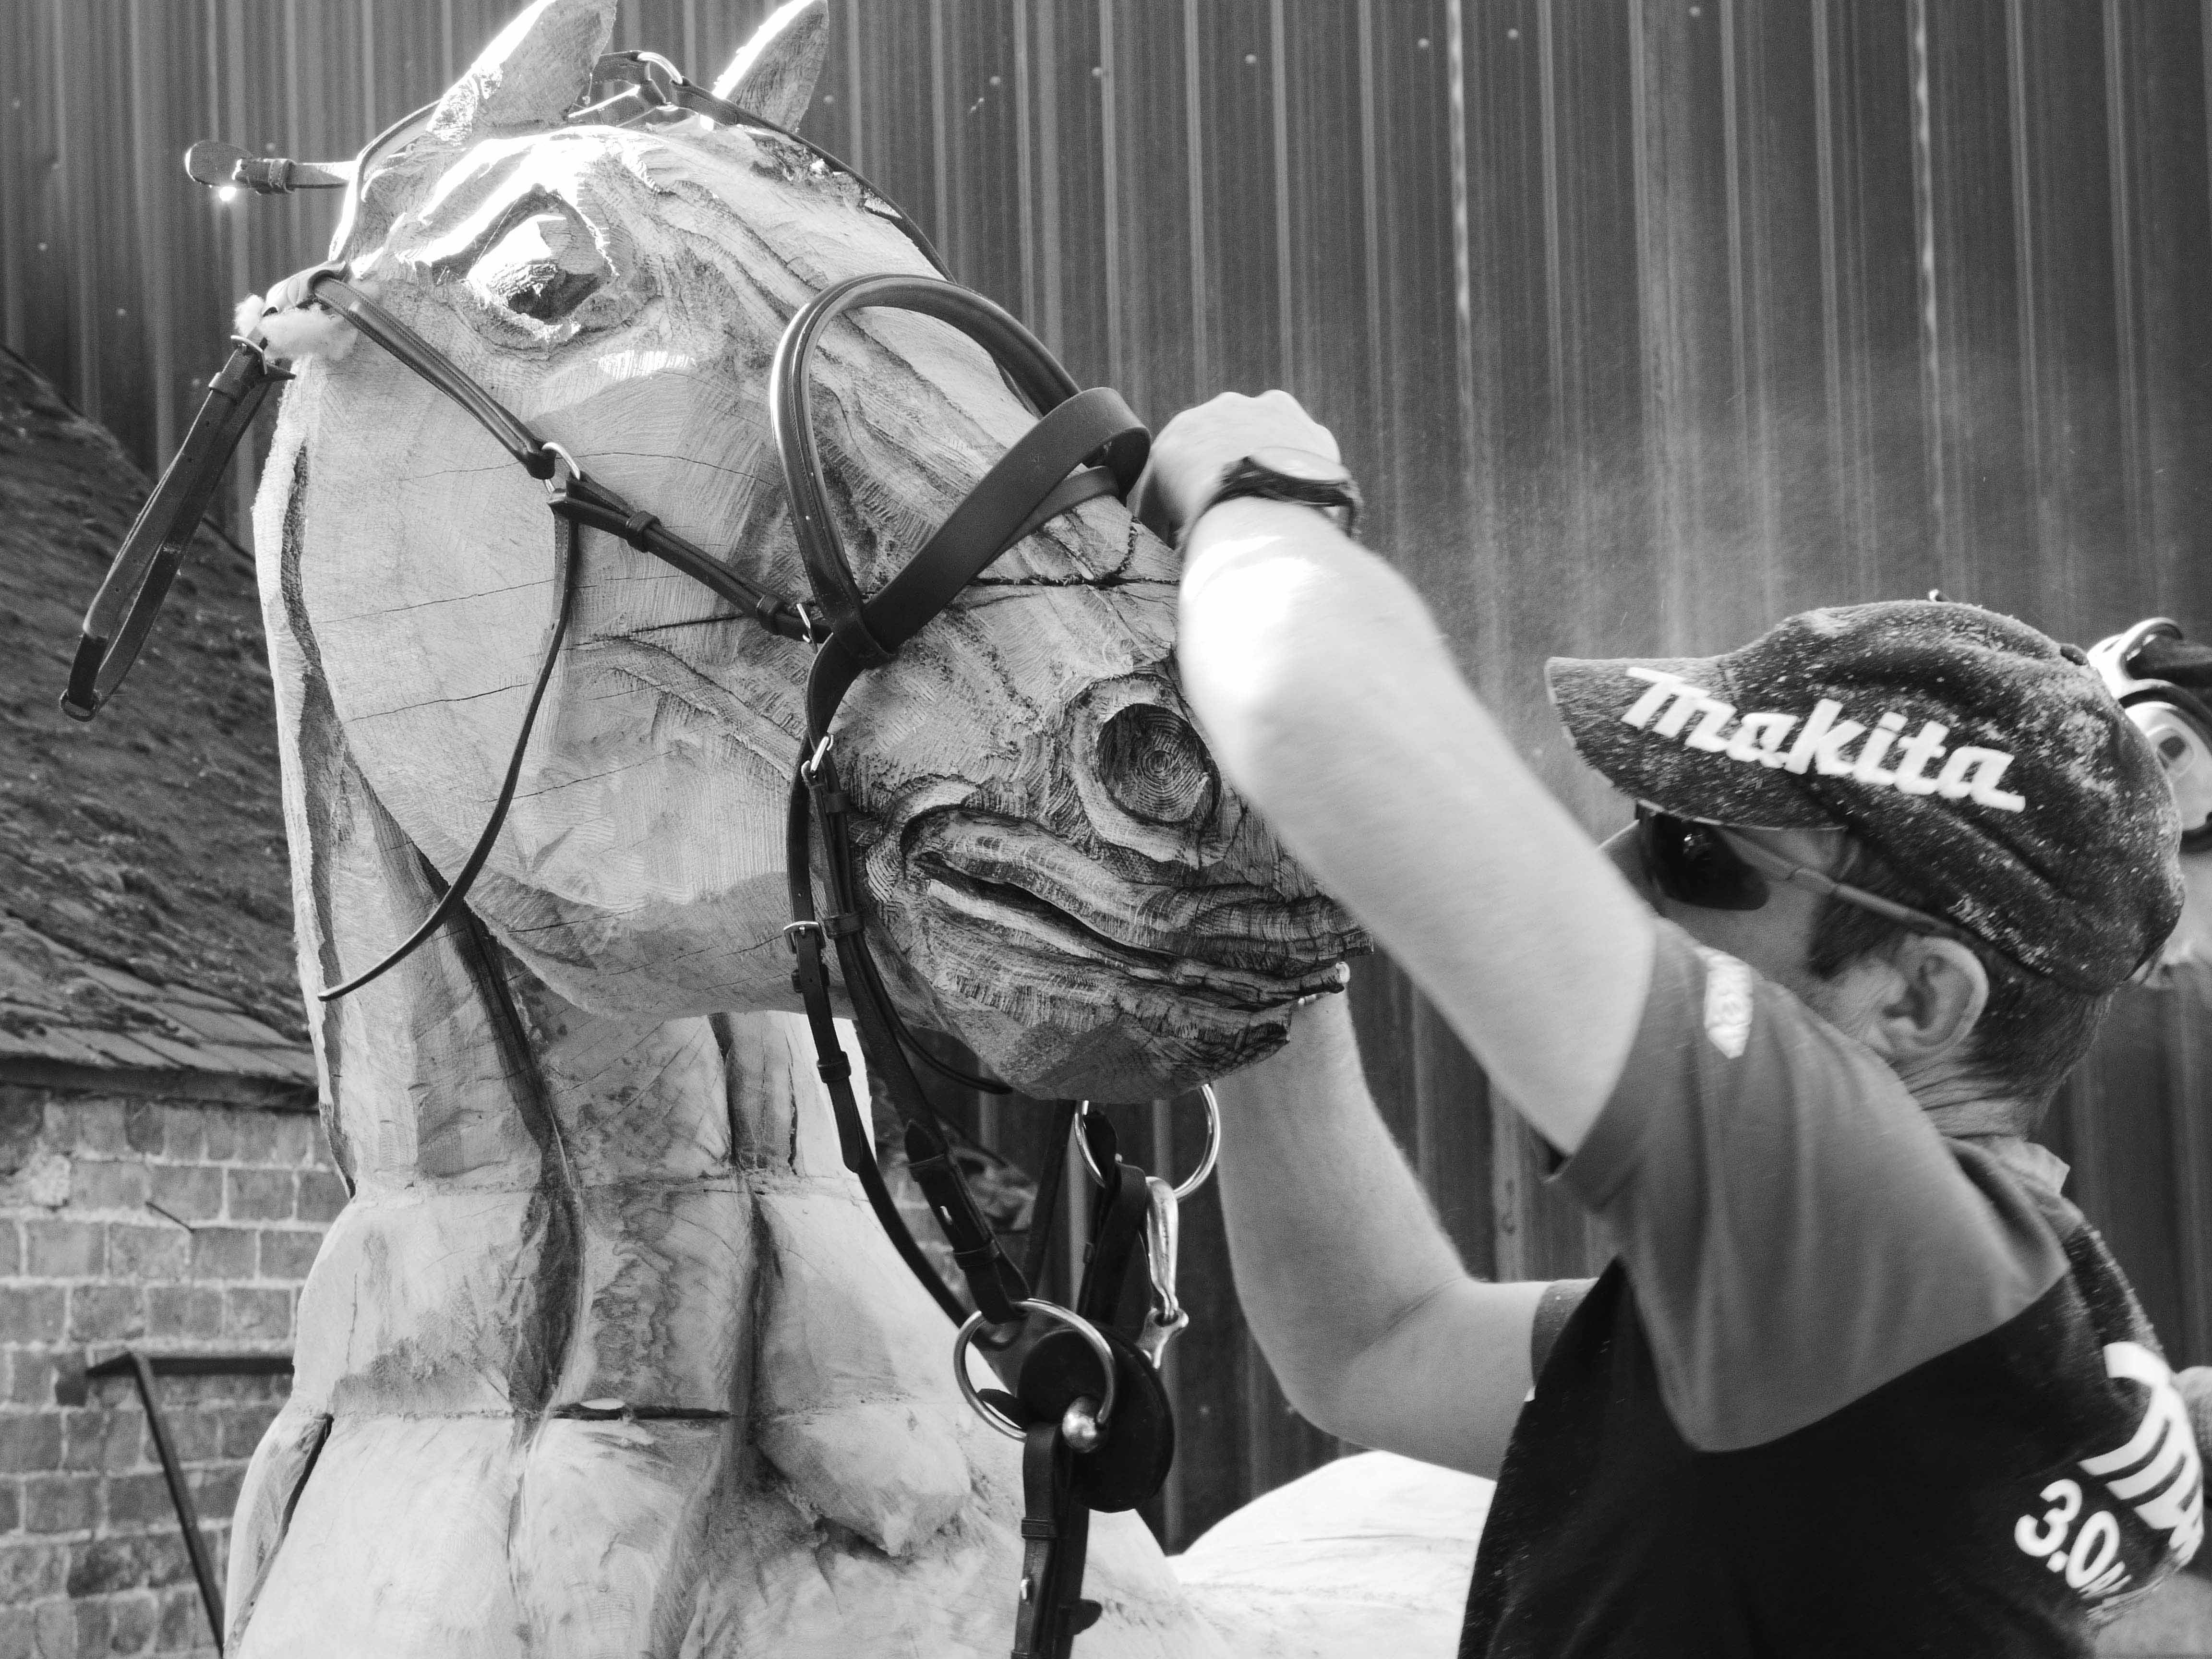 MAKITA CHAINSAWS HELP TO CREATE THE WONDERFUL WAR HORSE STORY